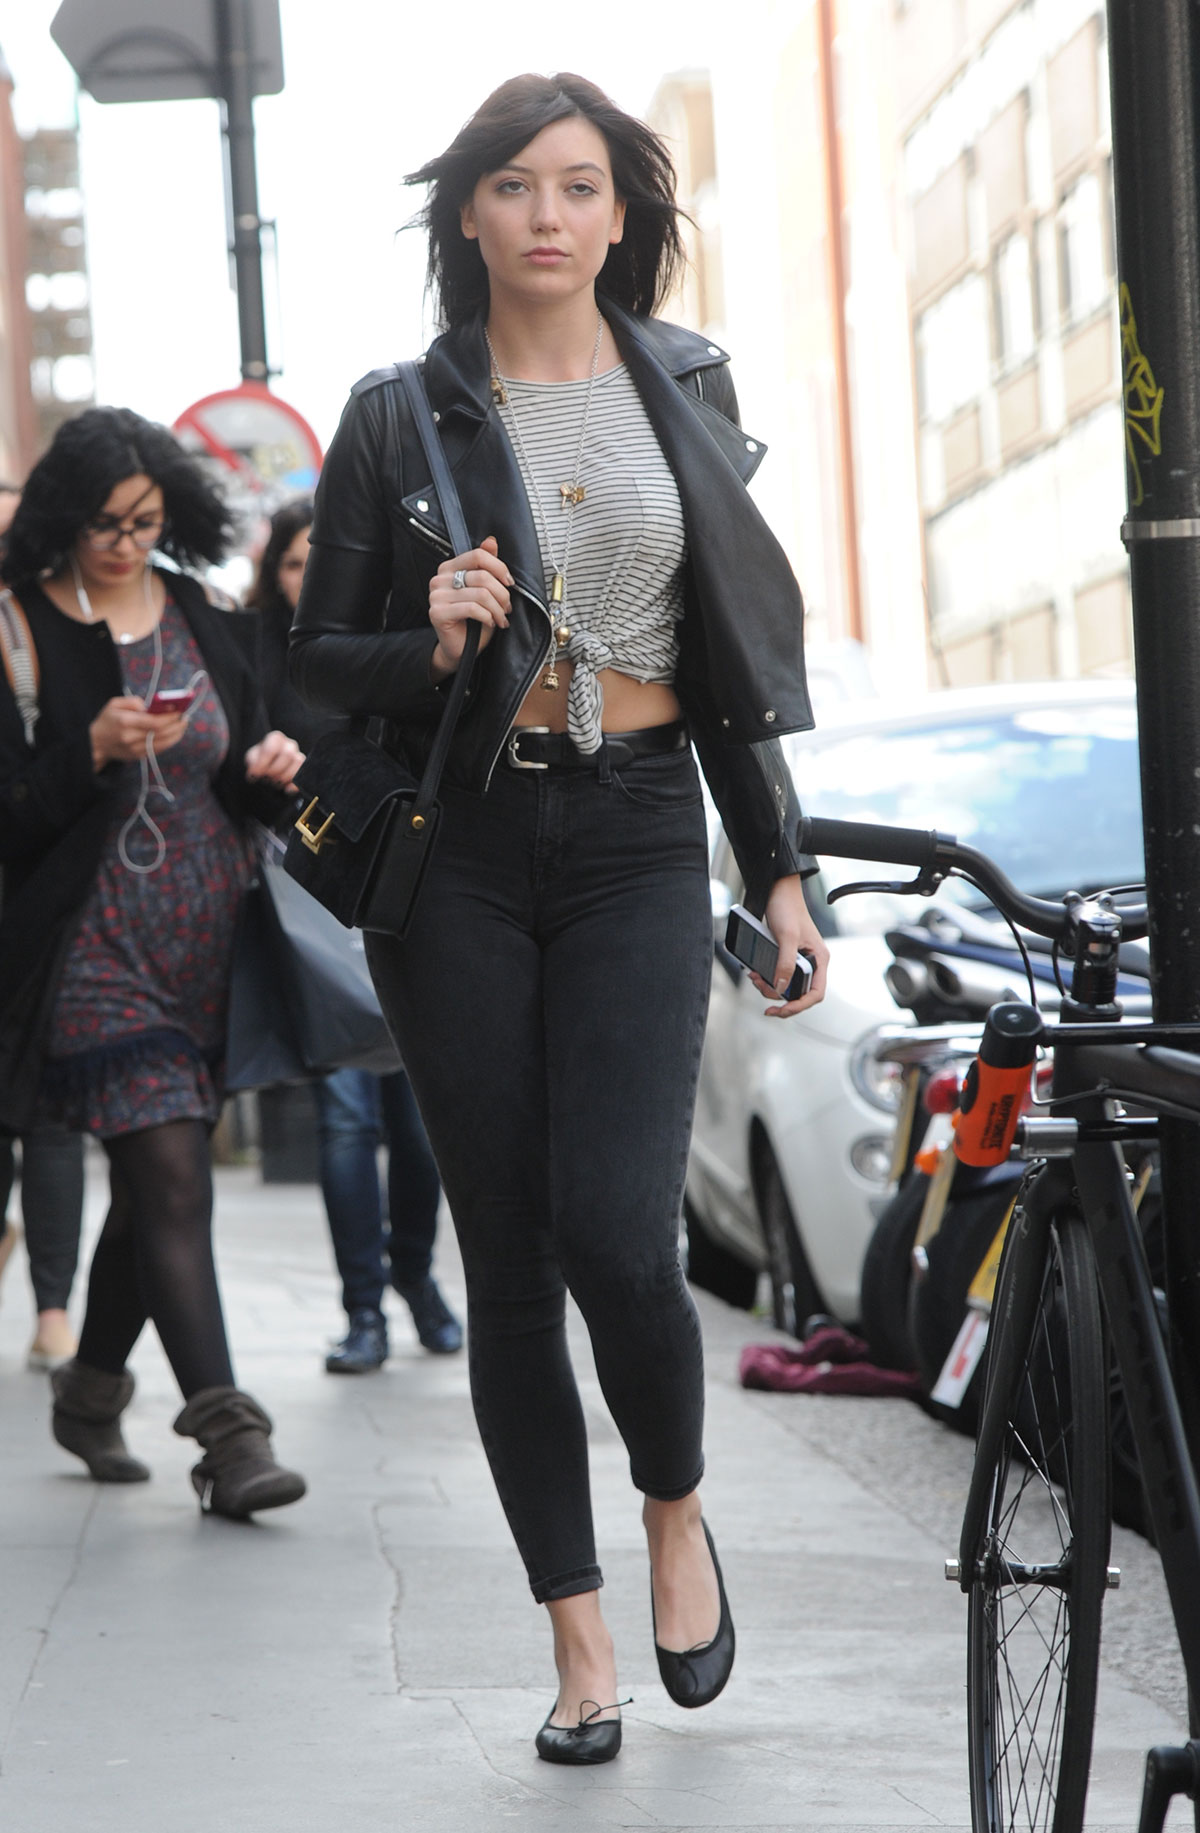 Daisy Lowe out and about in London